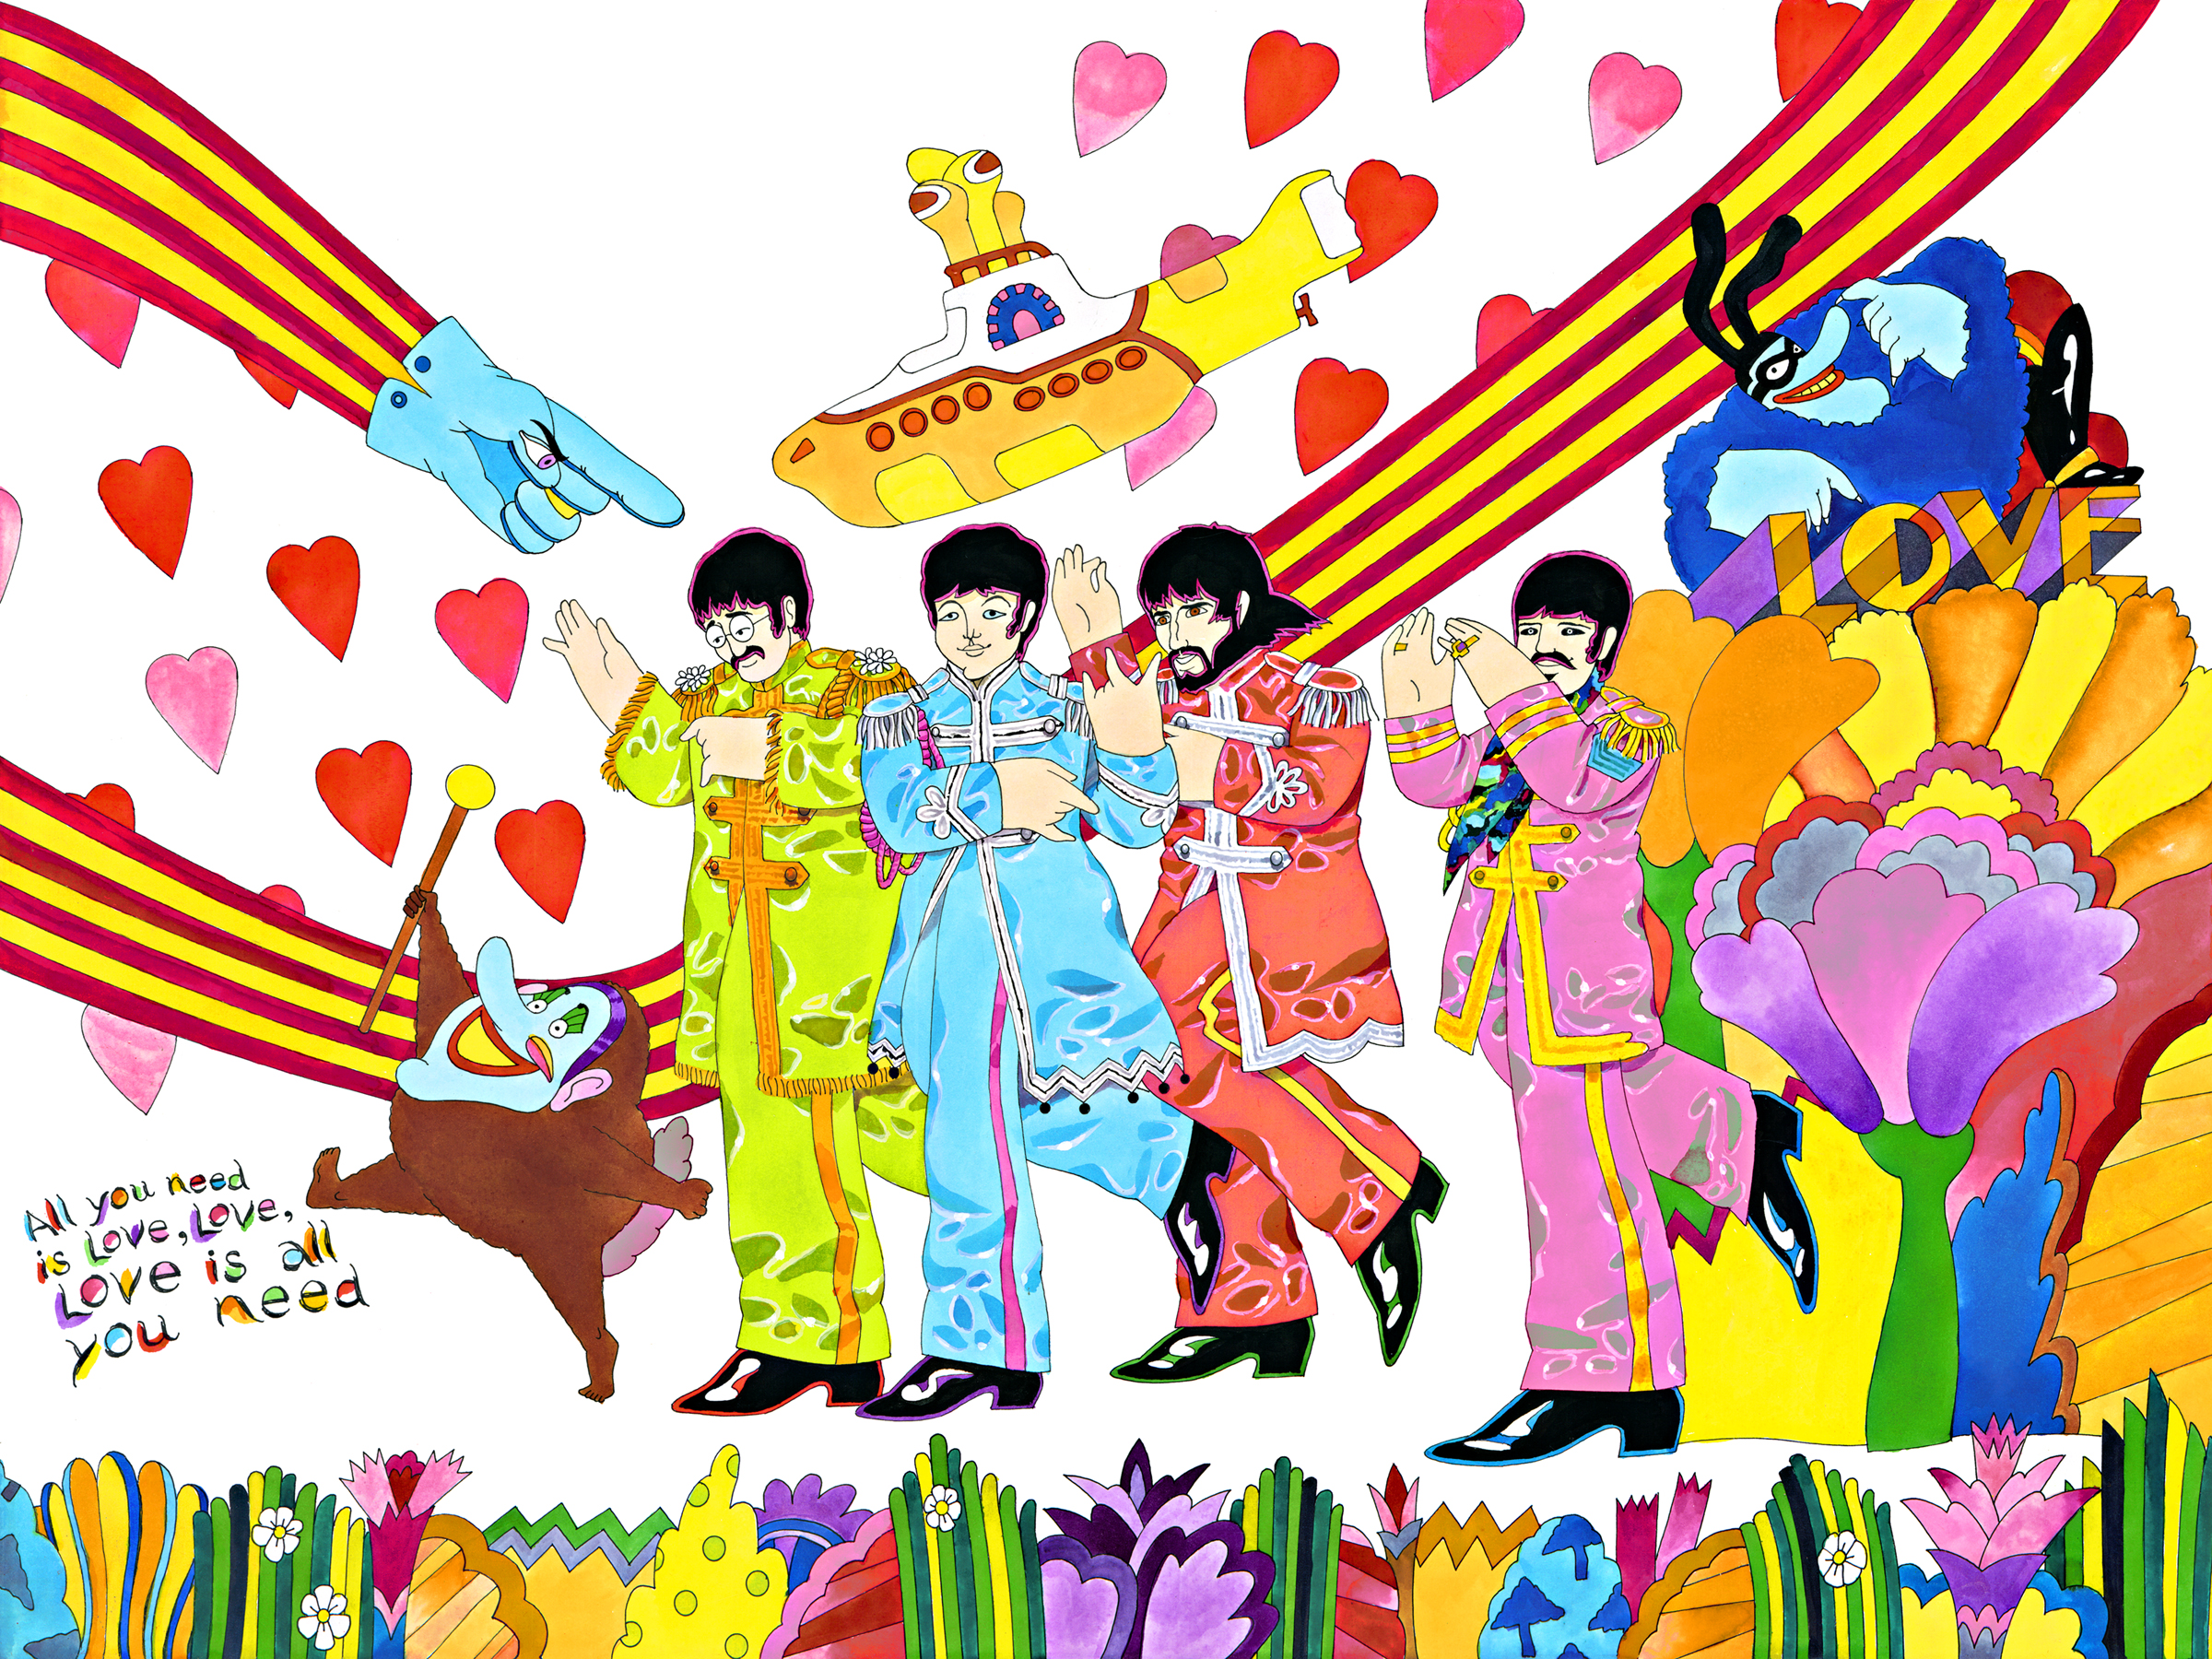 scoobydoo the beatles artist ron campbell to speak